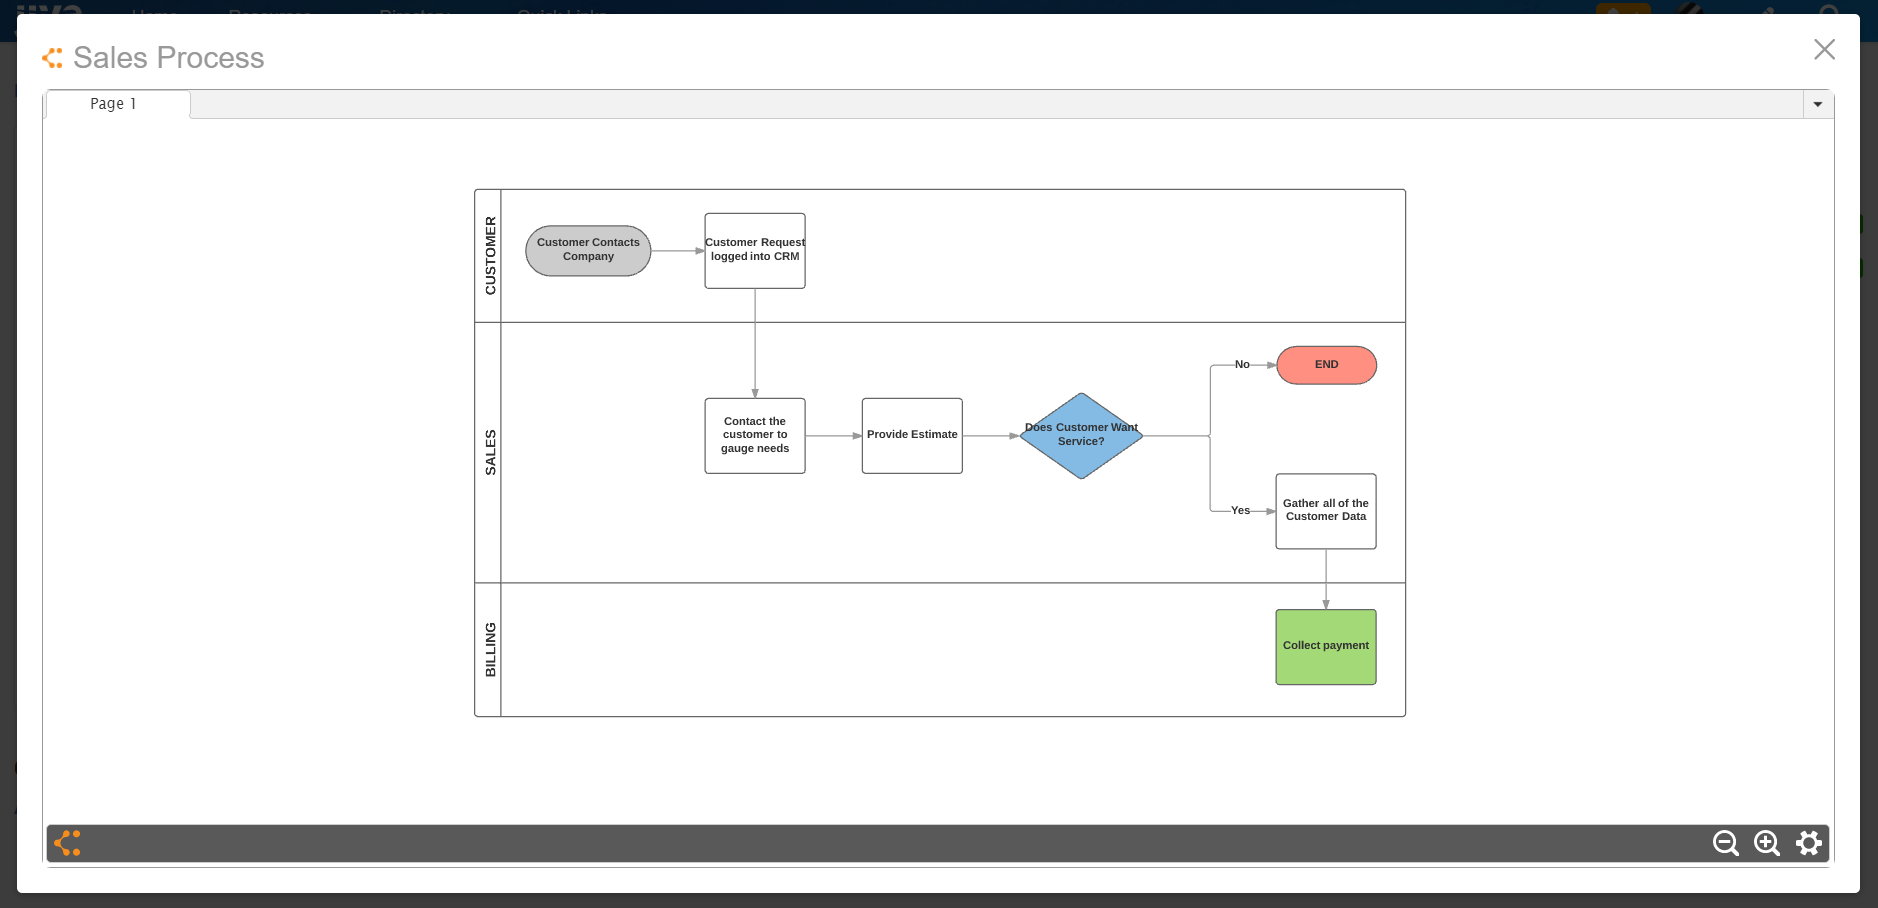 Lucidchart Html 5 Diagramming Integration For Jive Collaboration Also Learning And Memory Diagram On Network With Intranet Community Pricing Please Contact Supportlucidchartcom